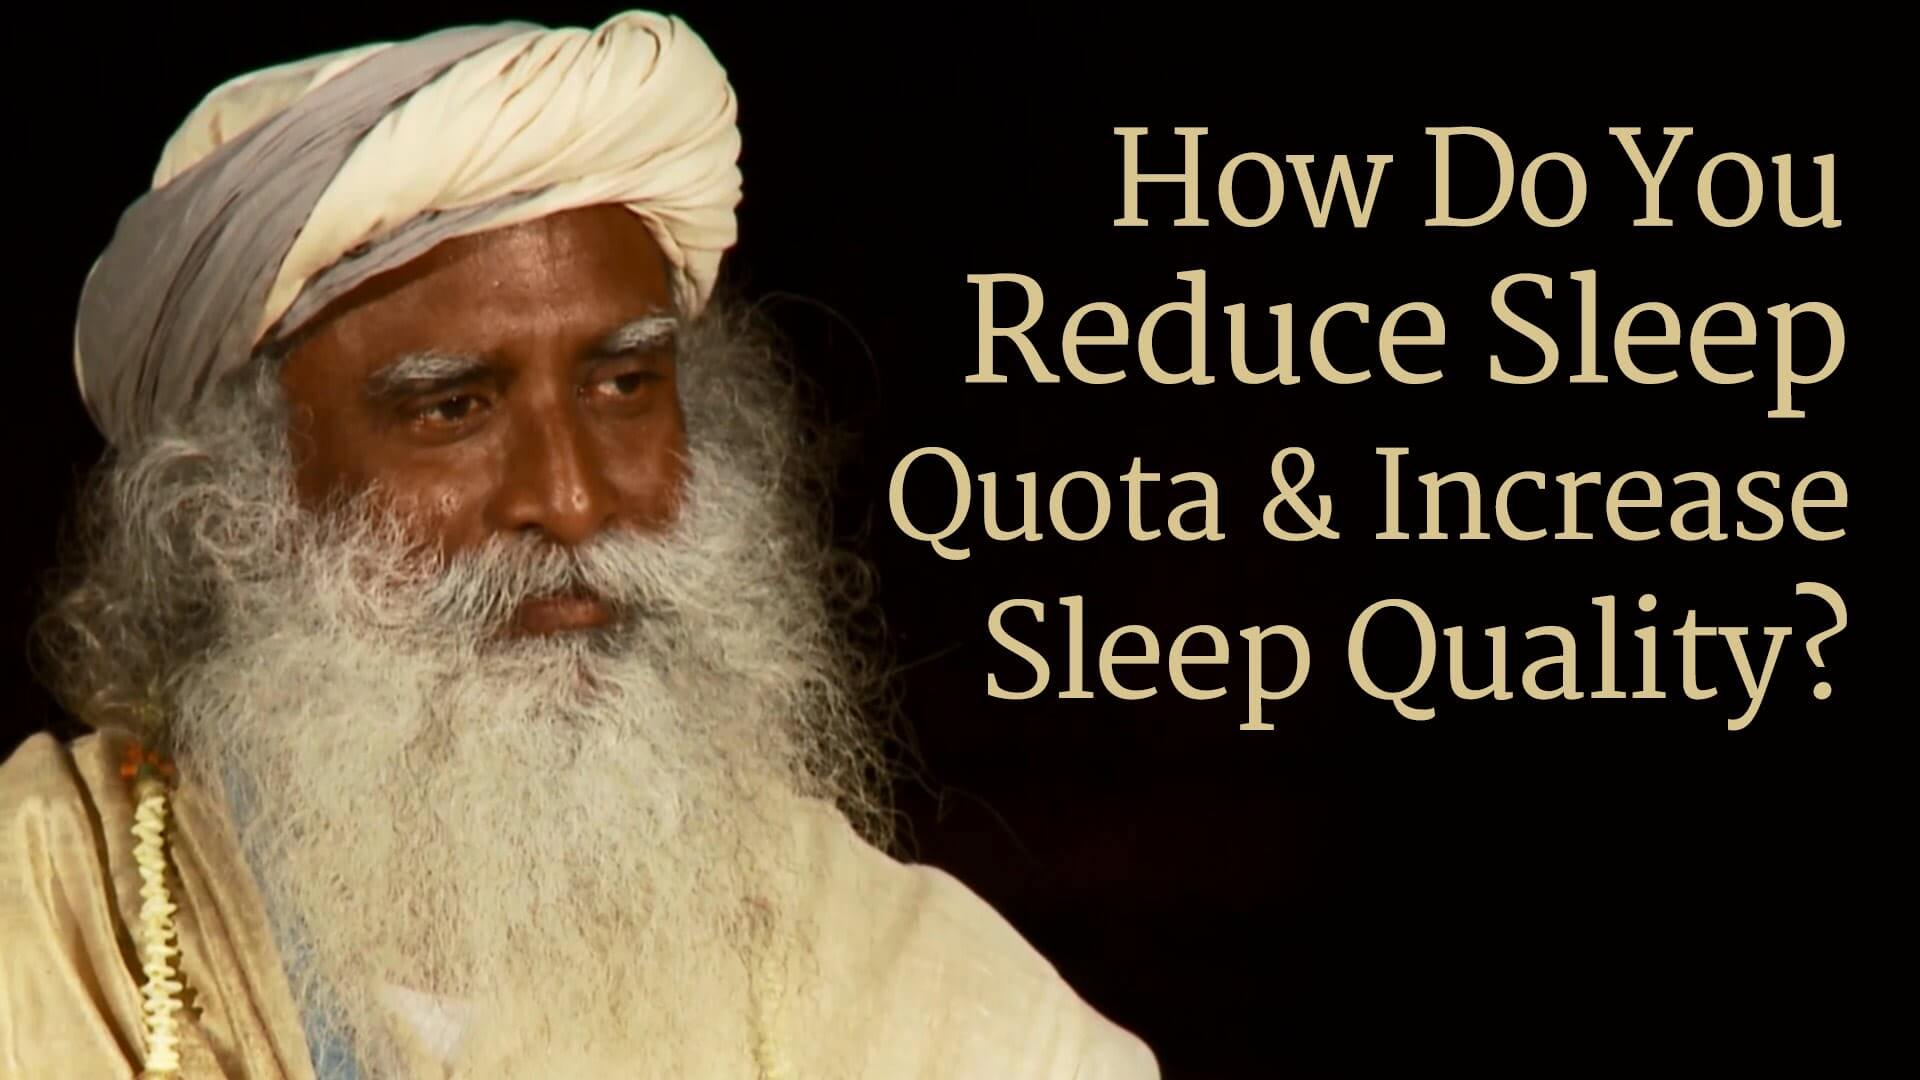 How to reduce sleep but stay healthy